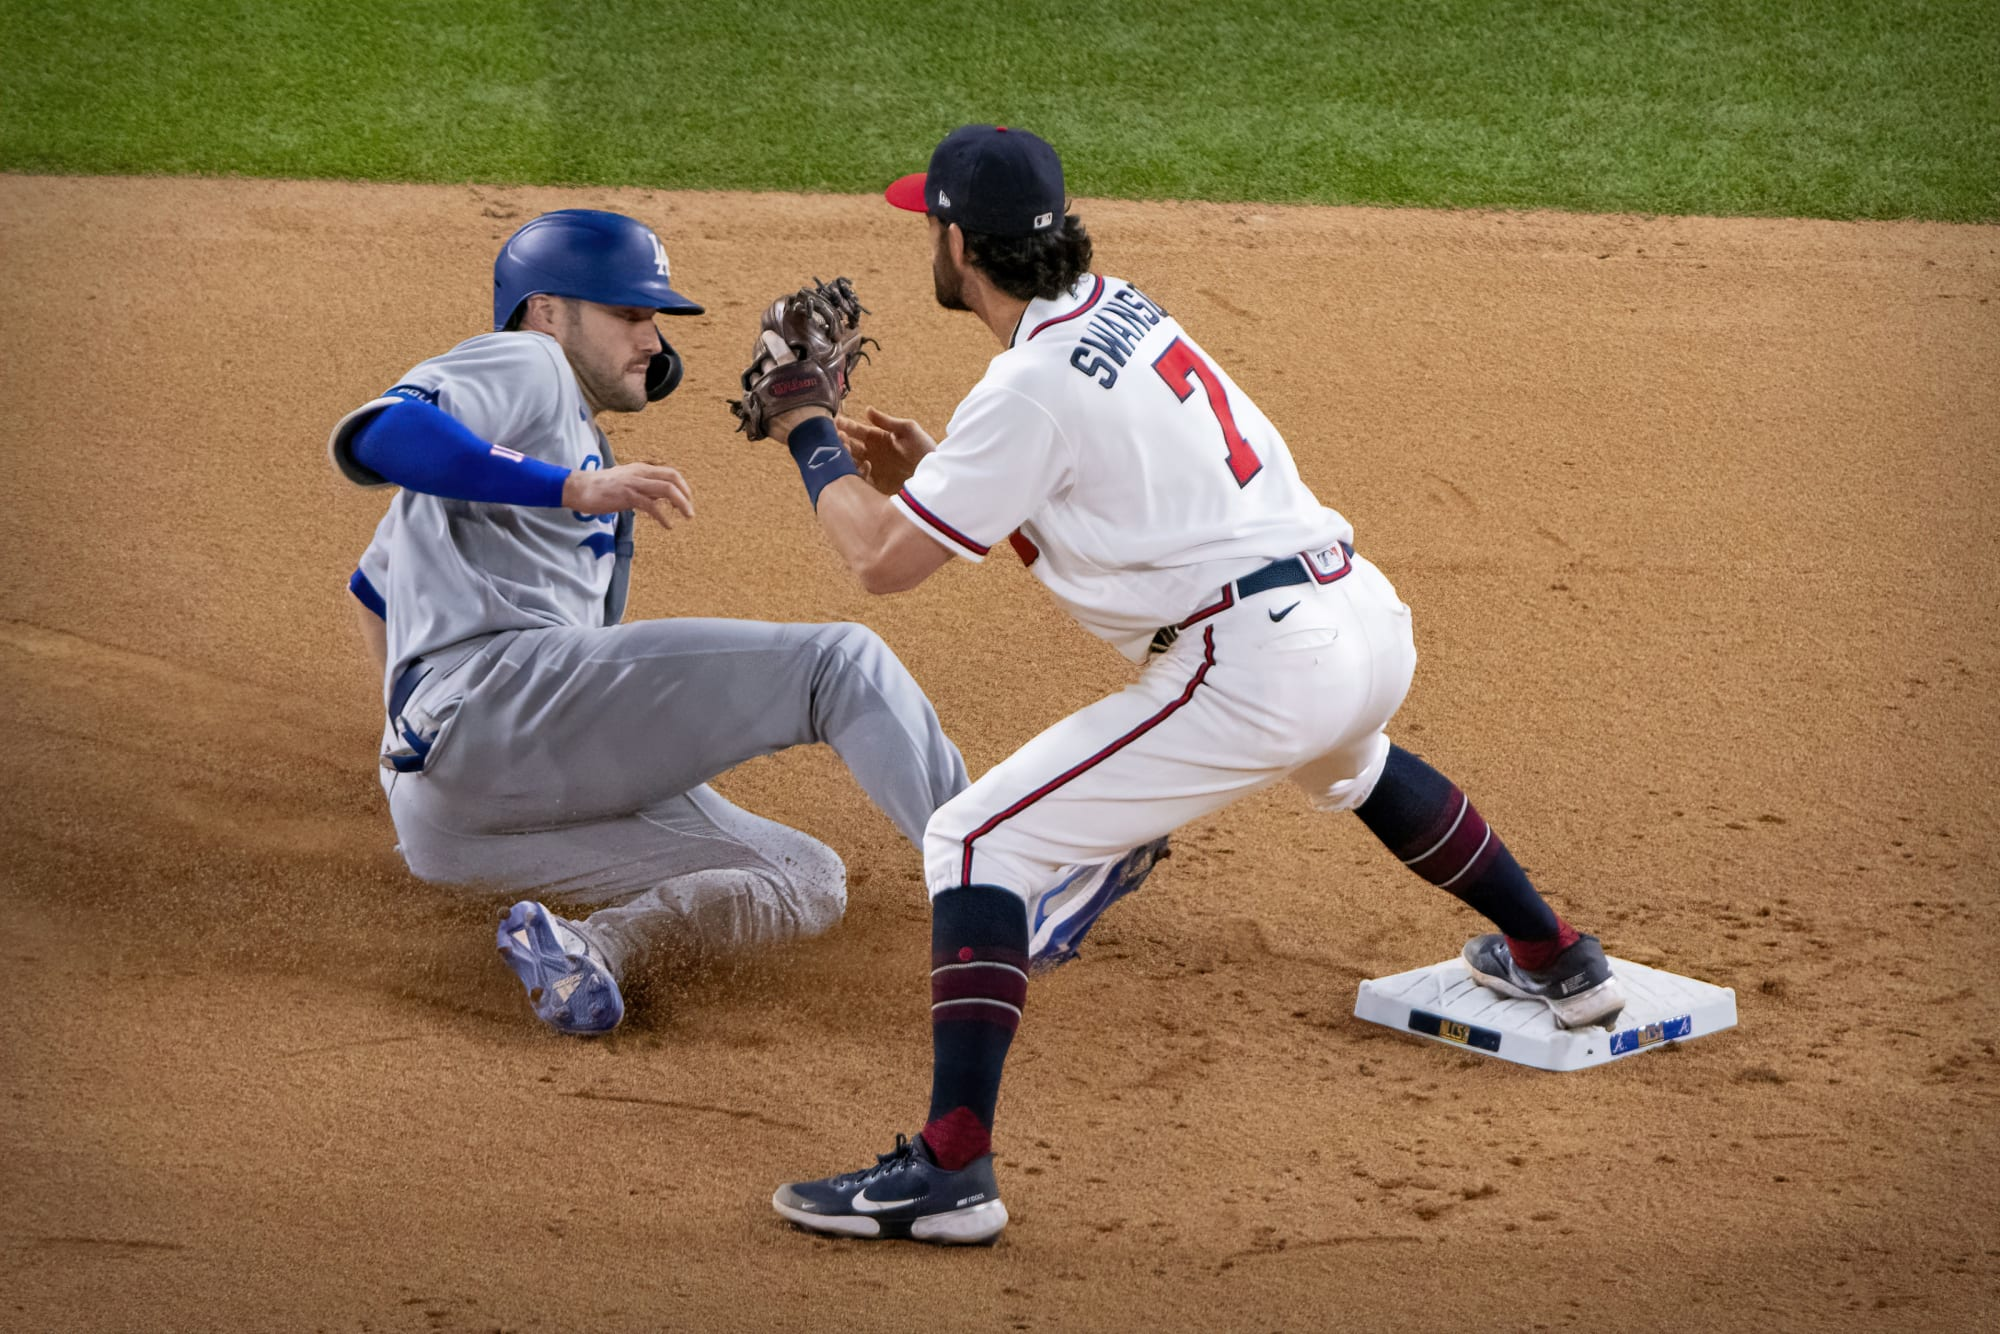 Gold Glove nominations continue to show Atlanta Braves defensive emphasis